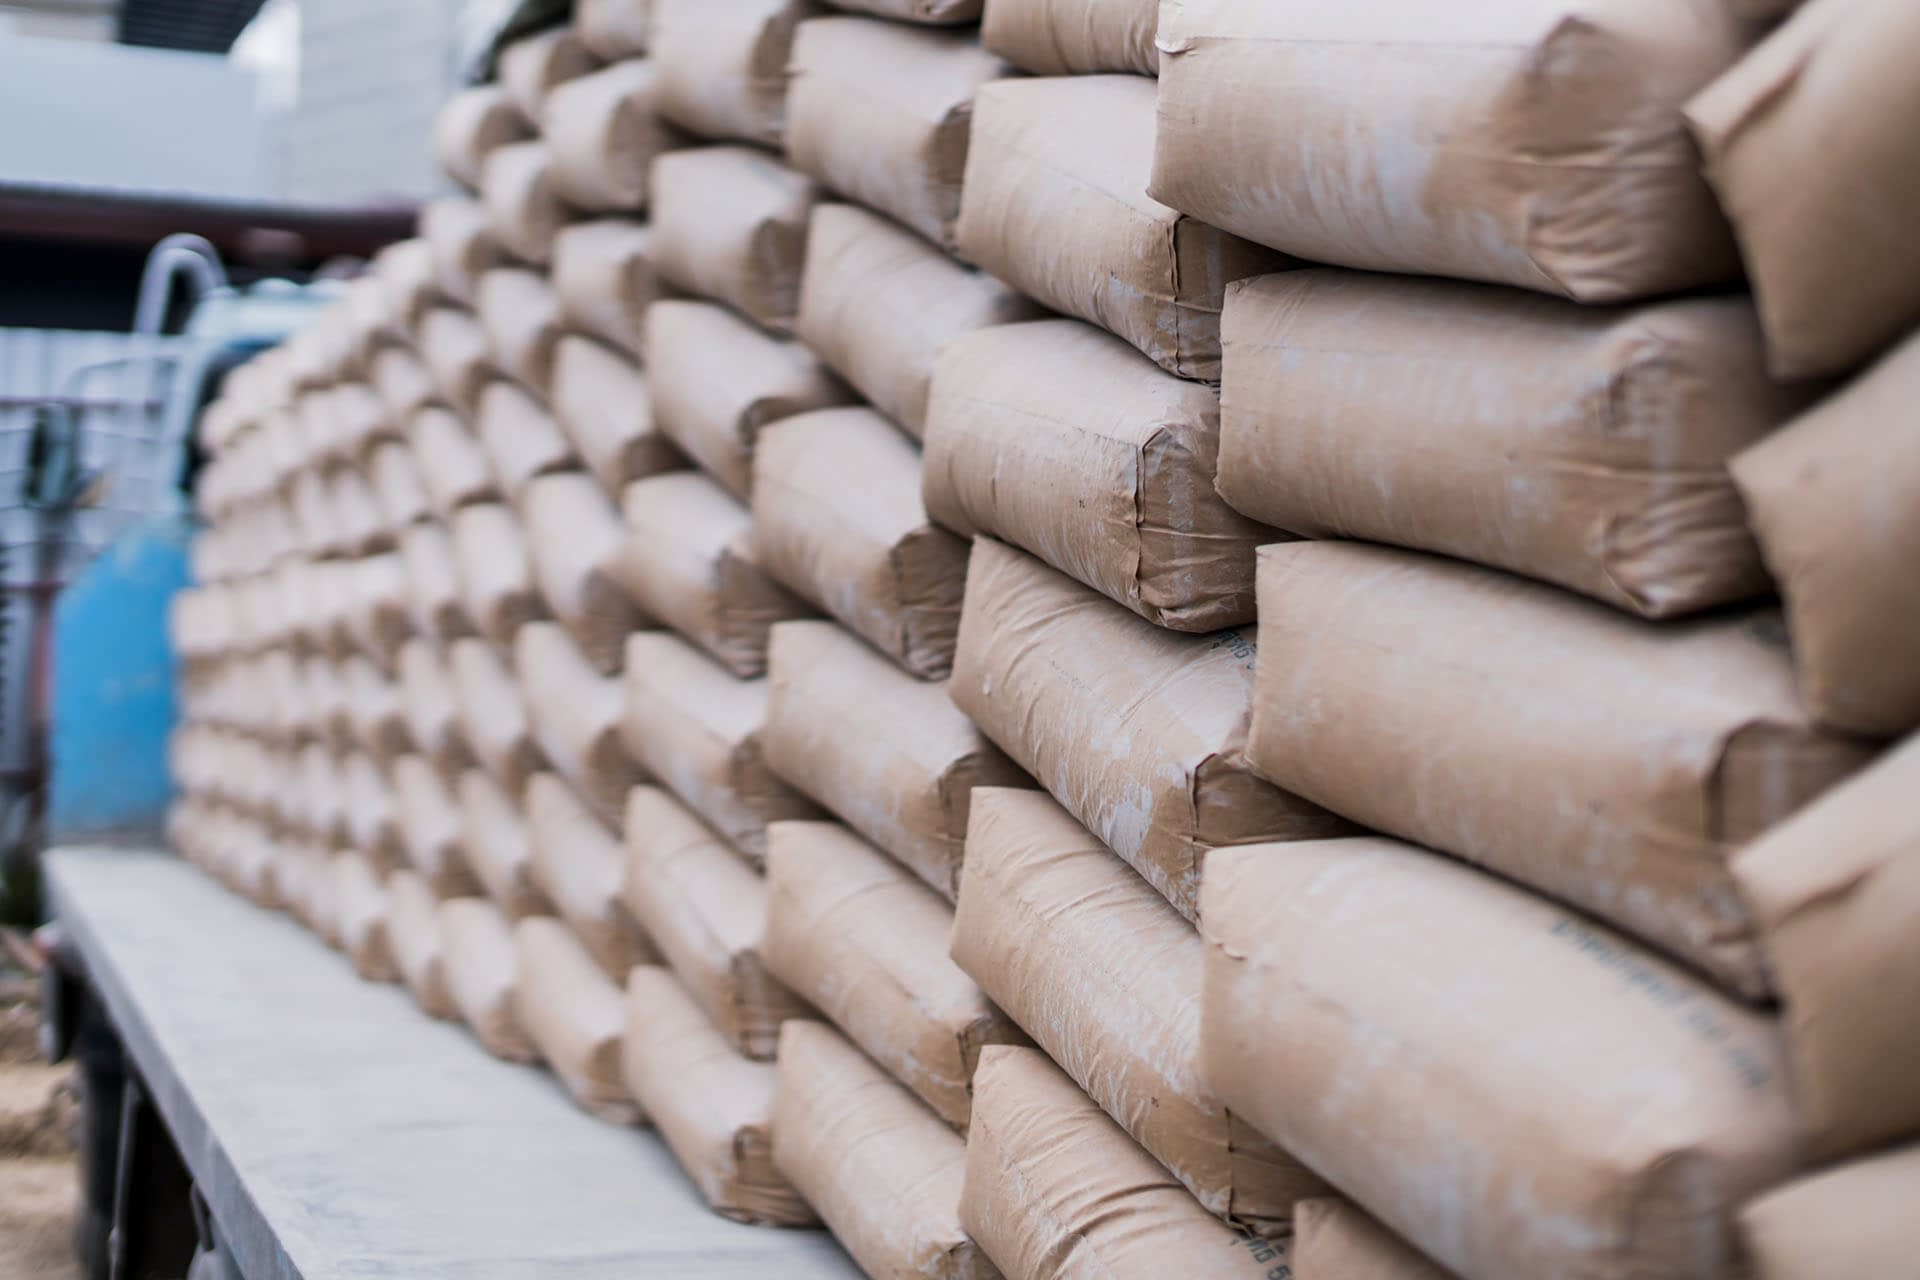 cement-ready-to-mix-building-materials-bags-warehouse